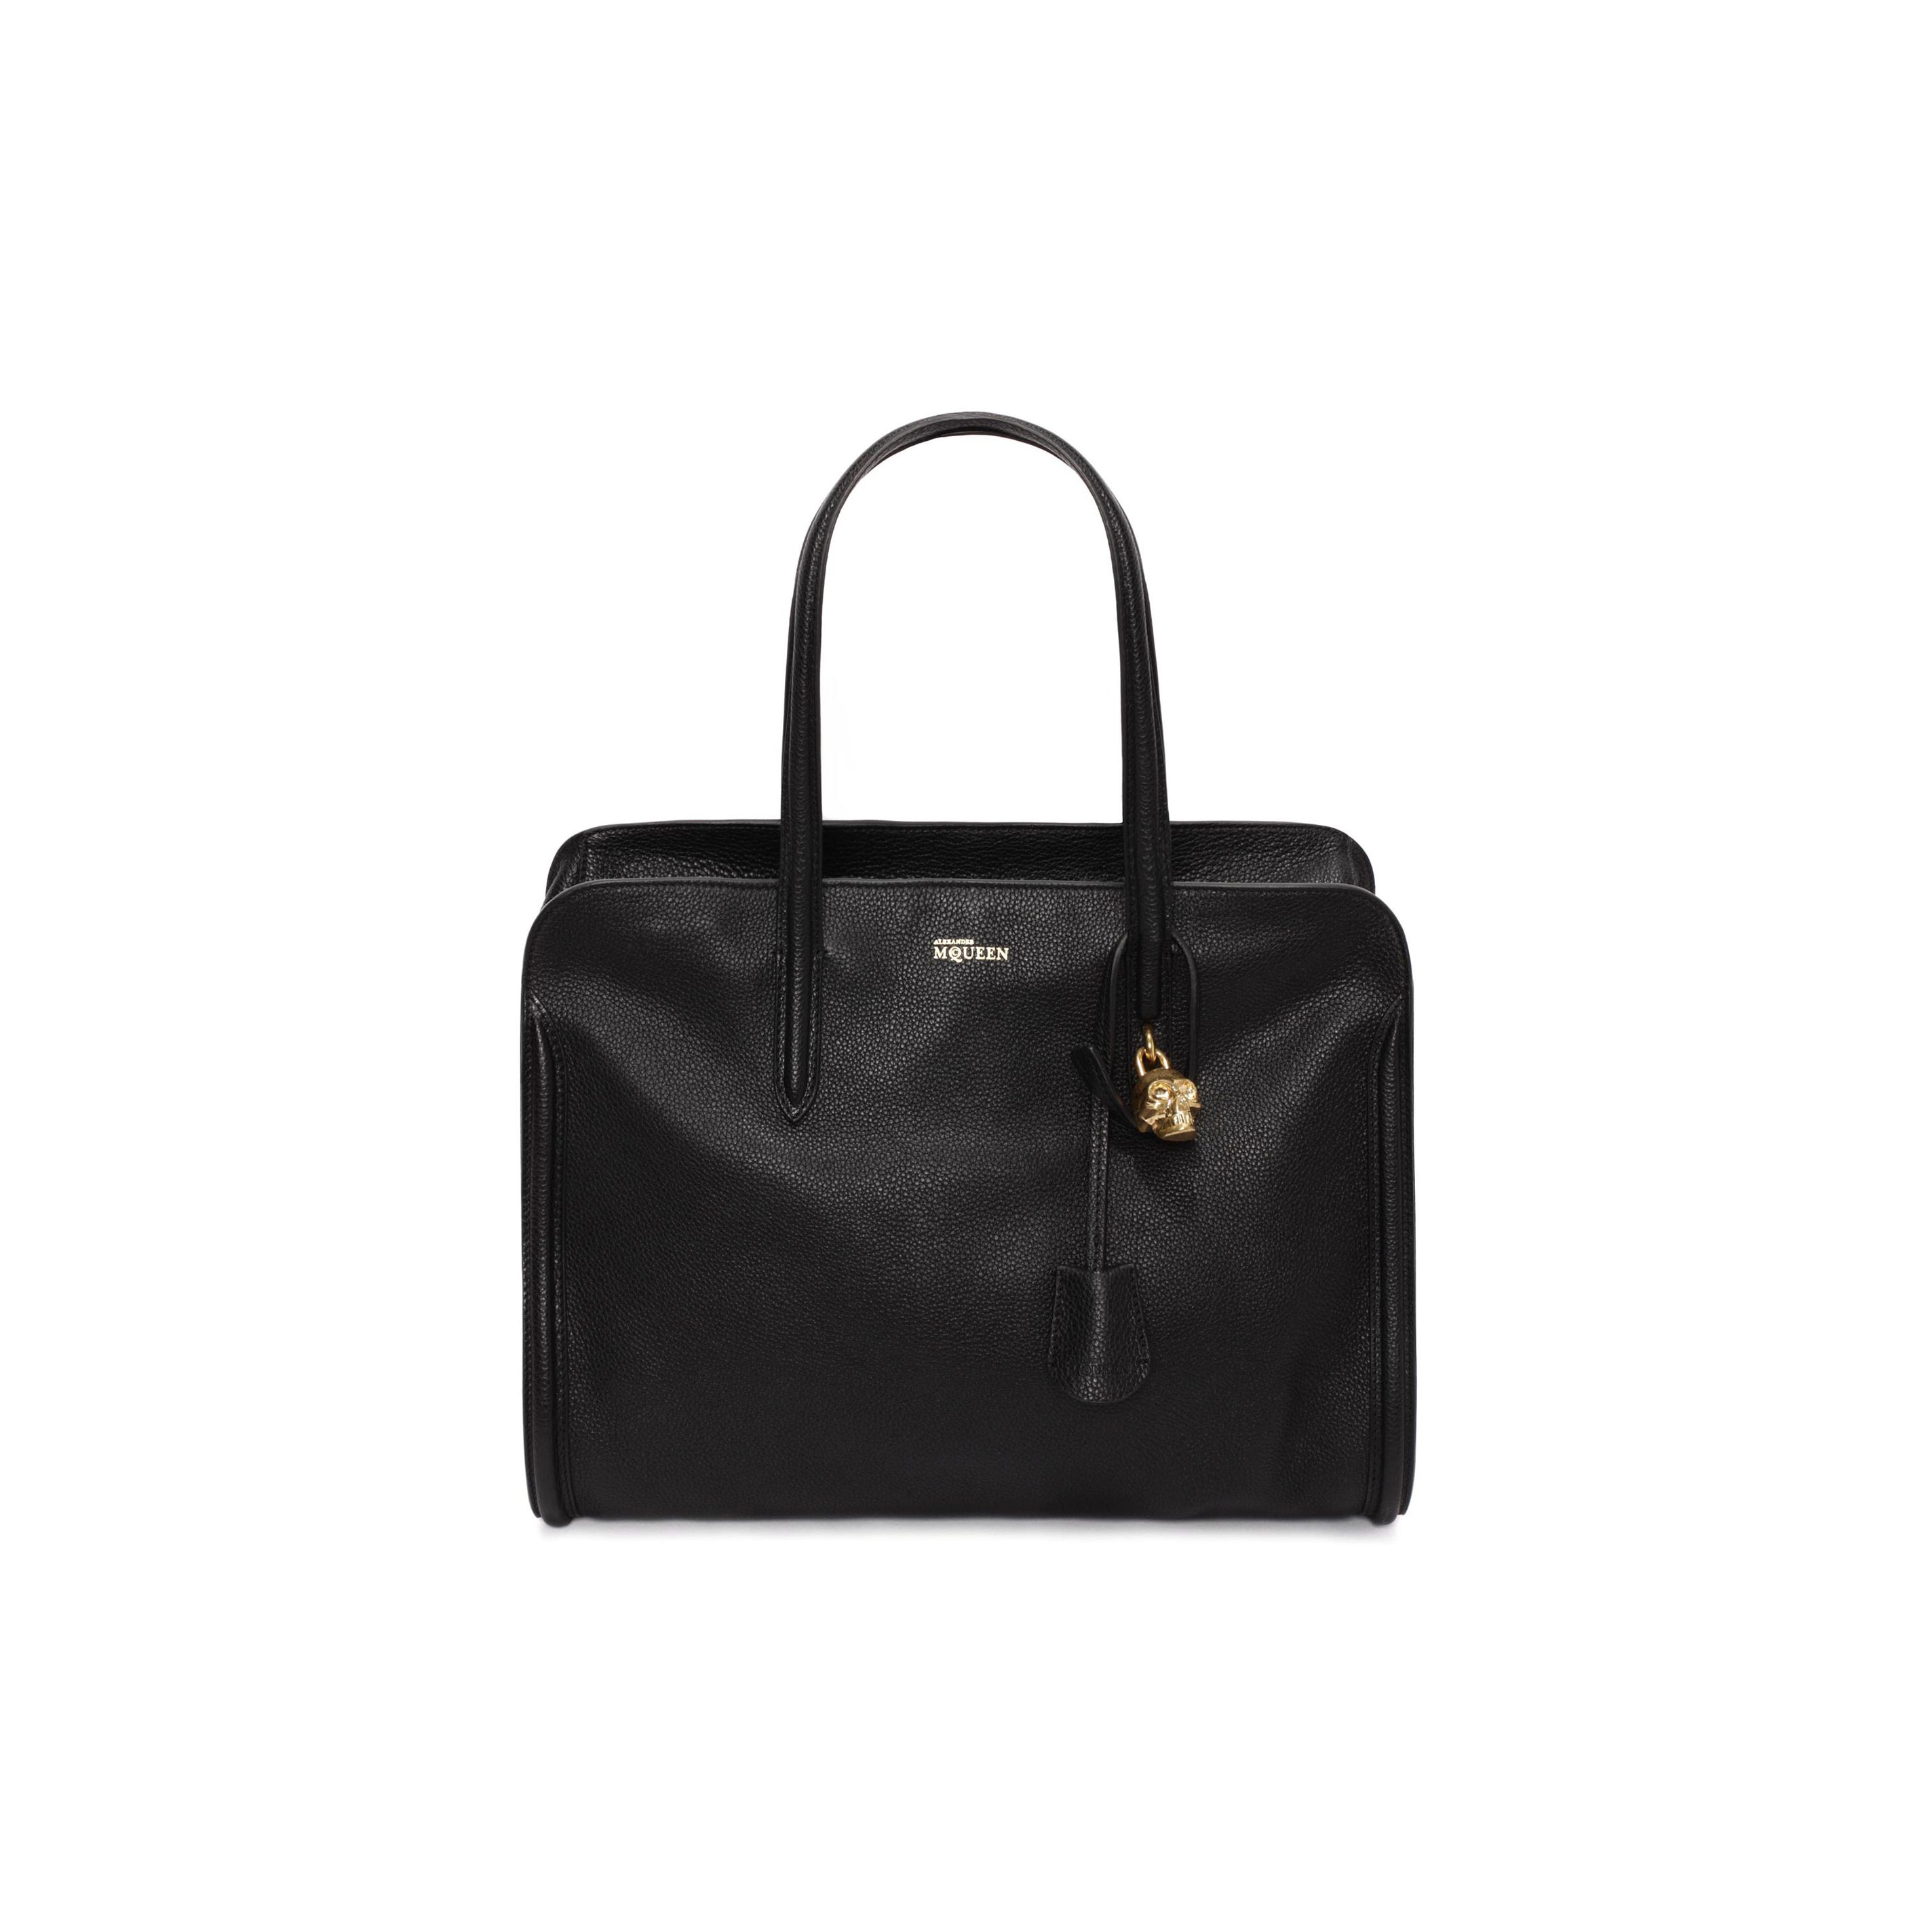 Grainy Leather Skull Padlock Top Handle Bag Alexander McQueen | Top Handle | Bags |